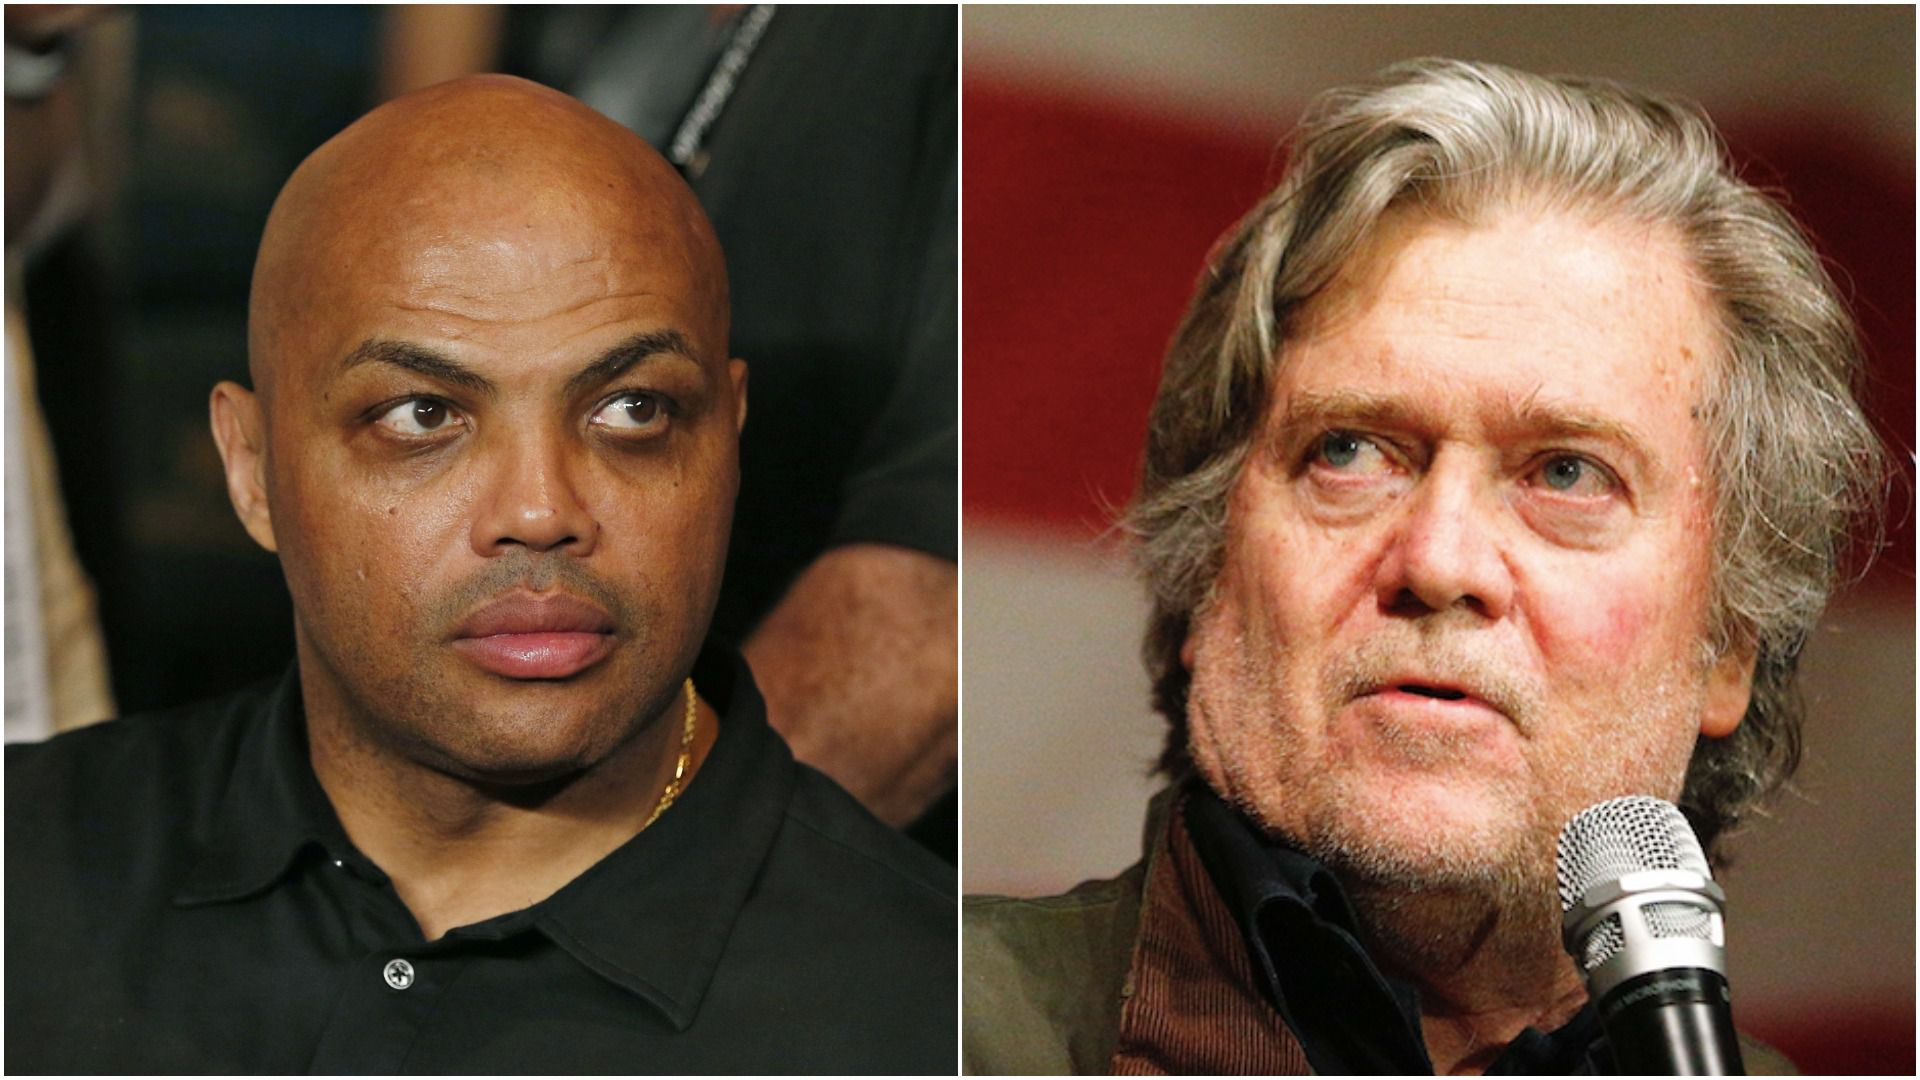 Barkley and Bannon